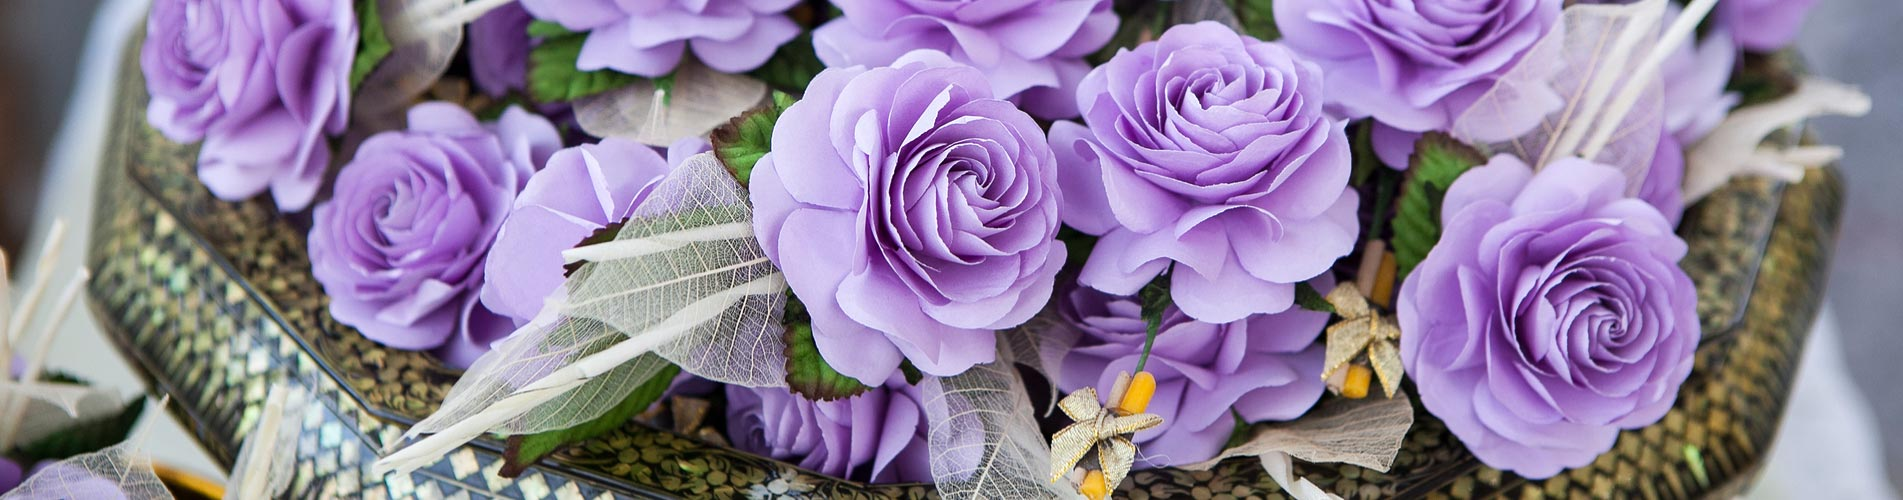 Obituary Guidelines In Lake City Fl How To Write Obituaries